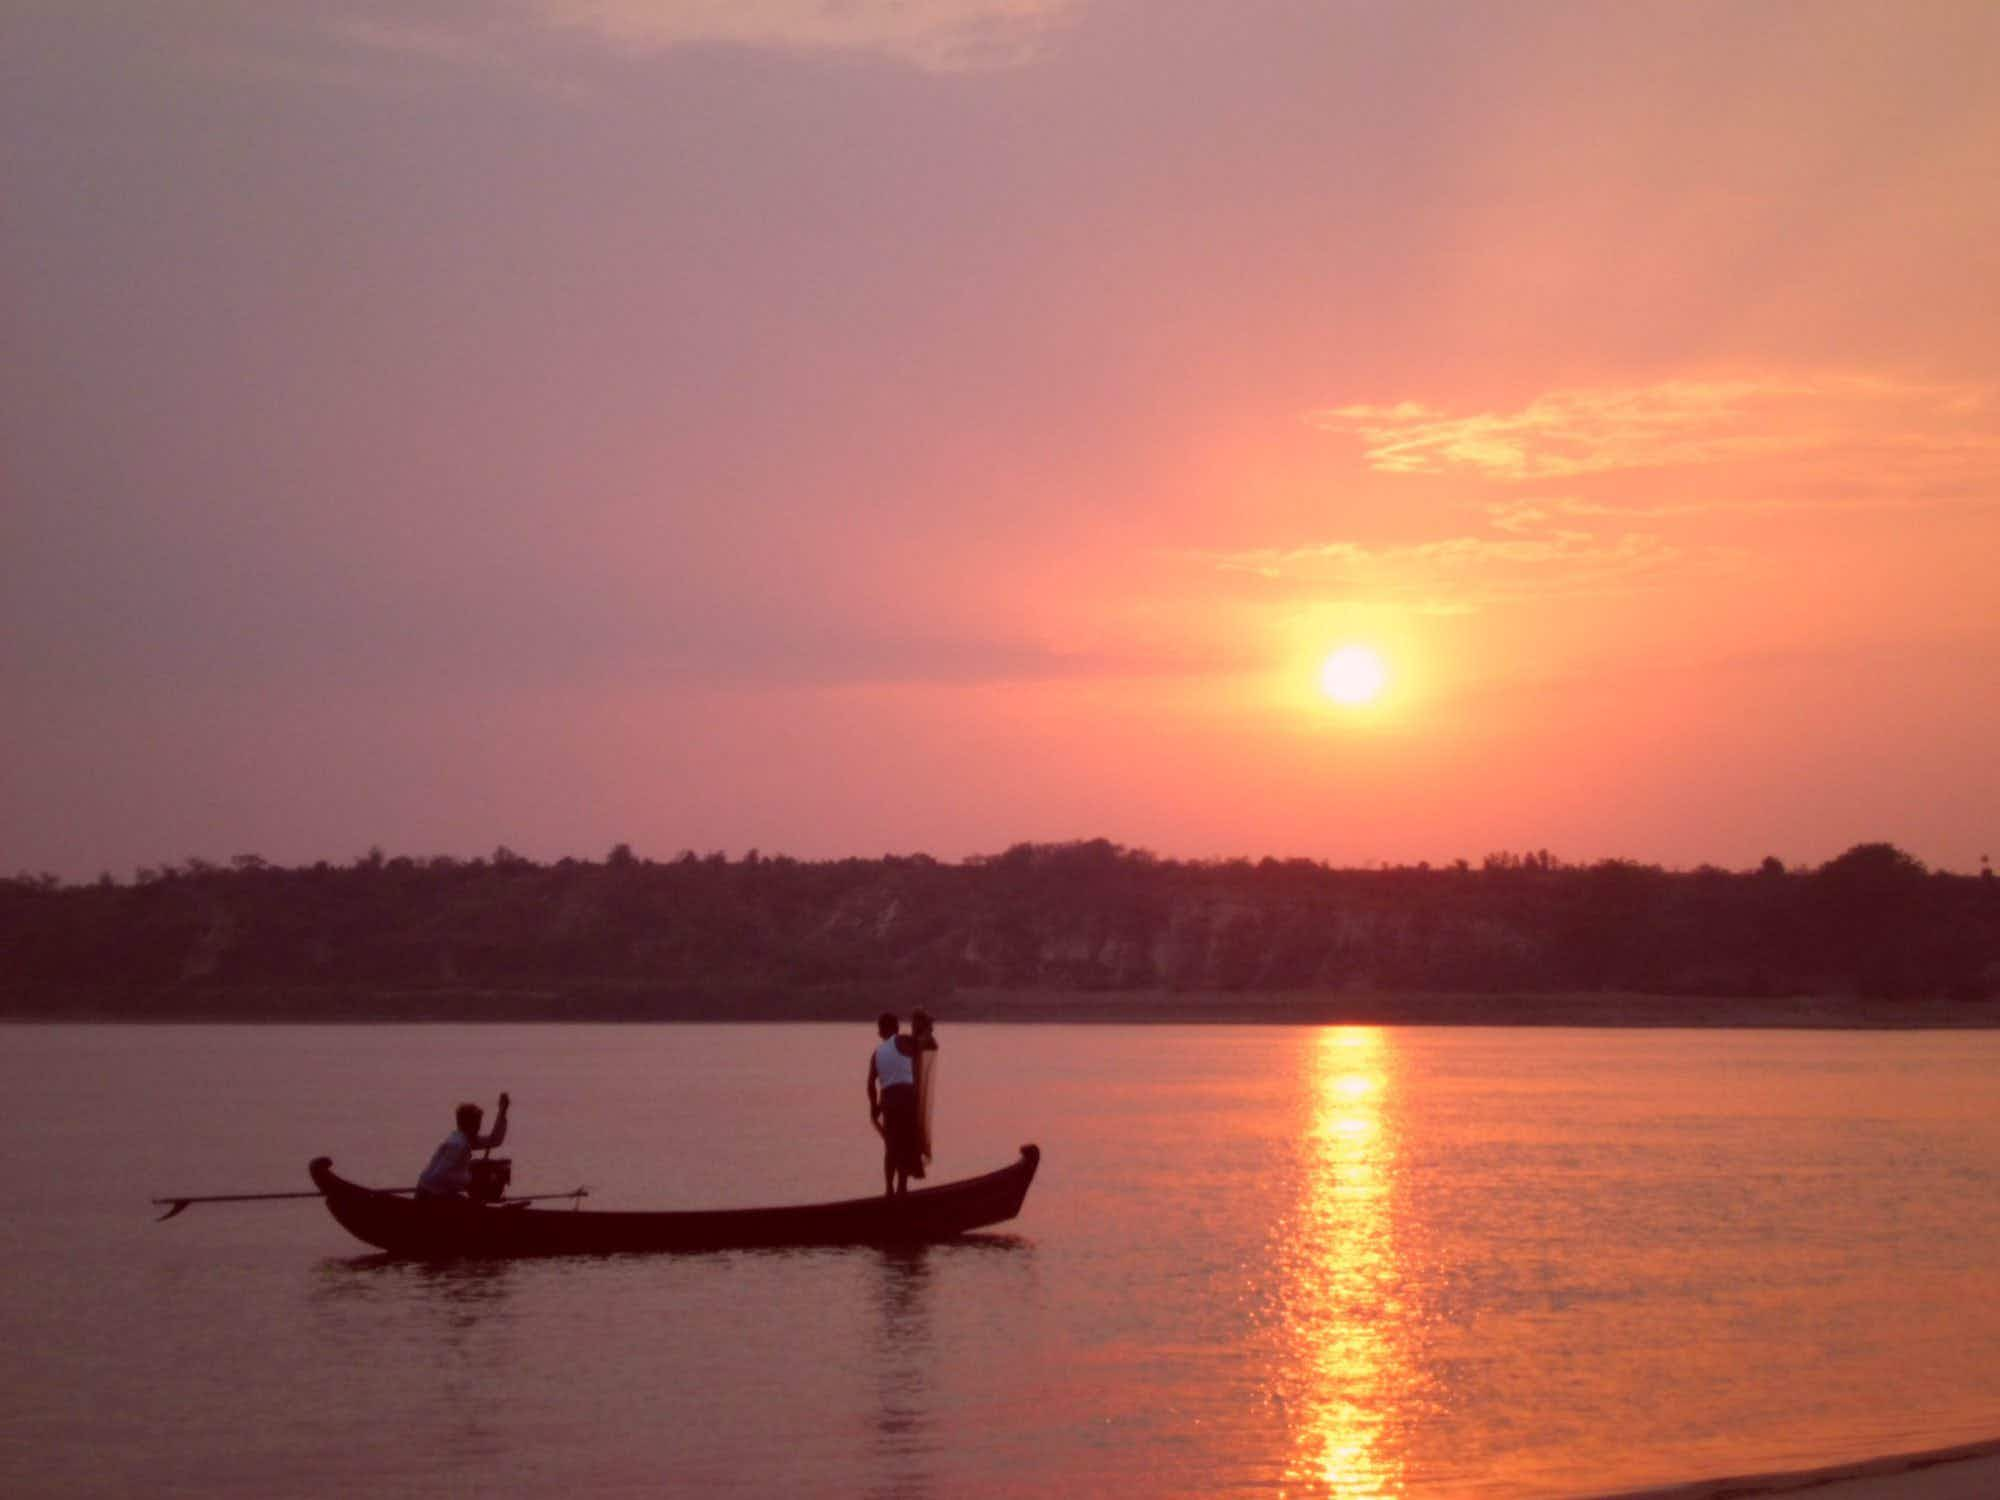 Take an eco-trip to Myanmar and help protect dolphins and the local culture